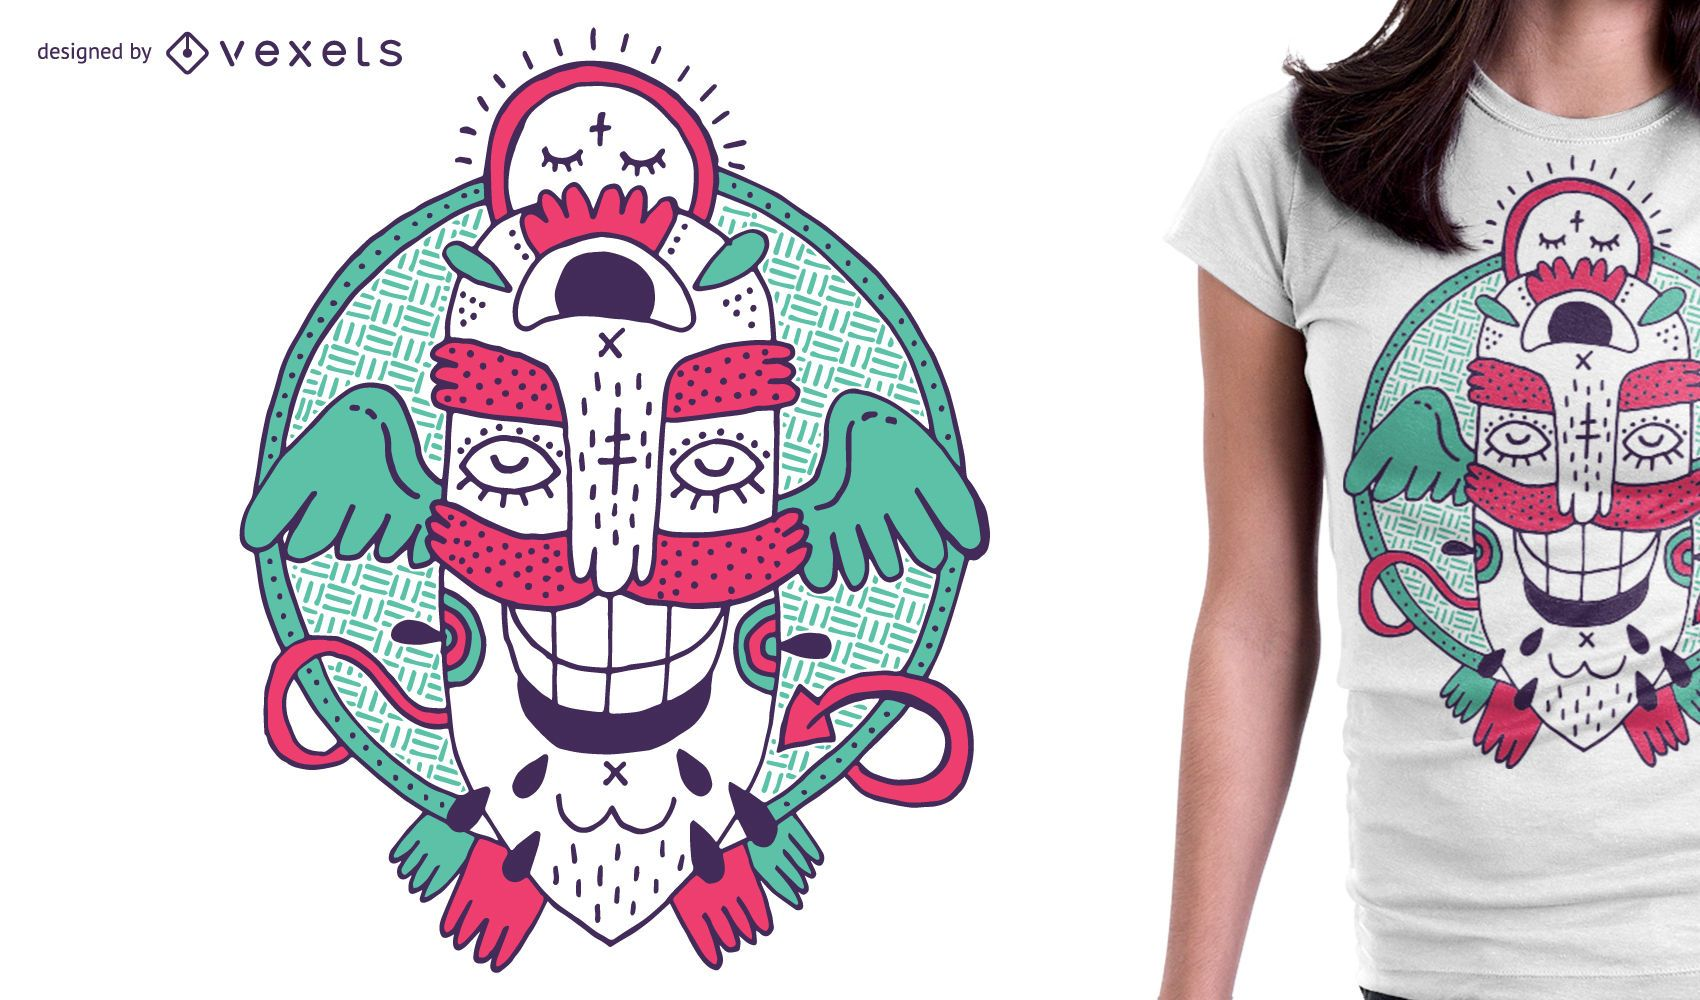 Tshirt Designs With License To Download